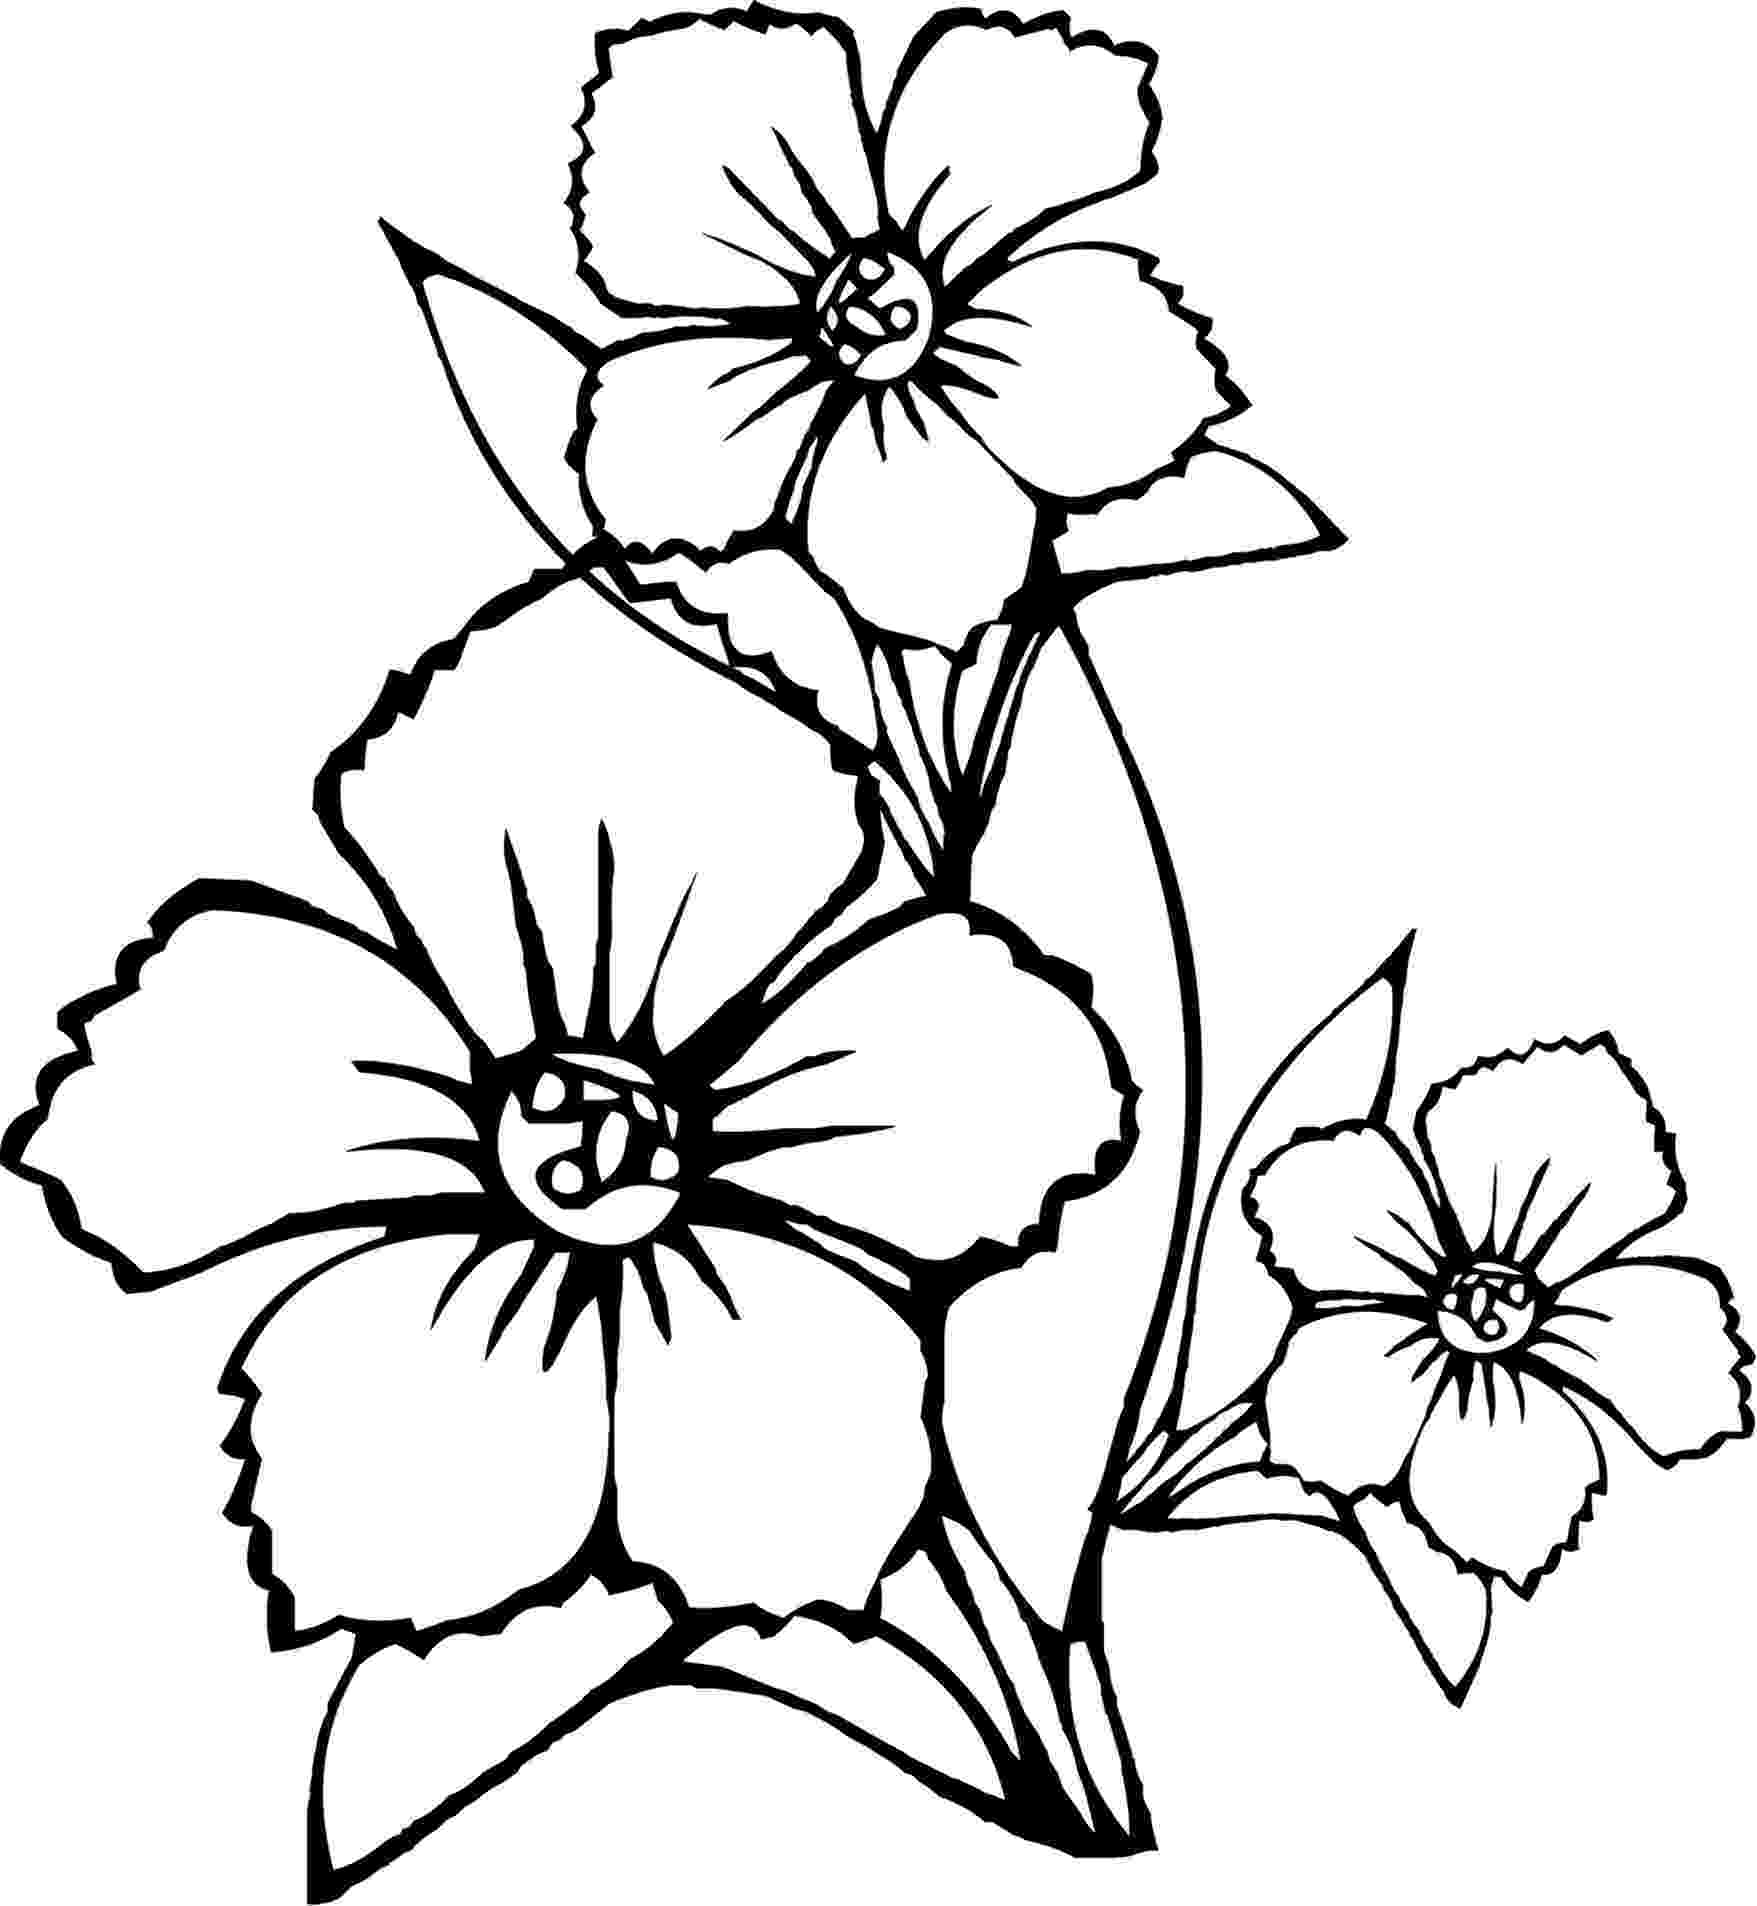 flower printable pictures free printable bursting blossoms flower coloring page printable pictures flower